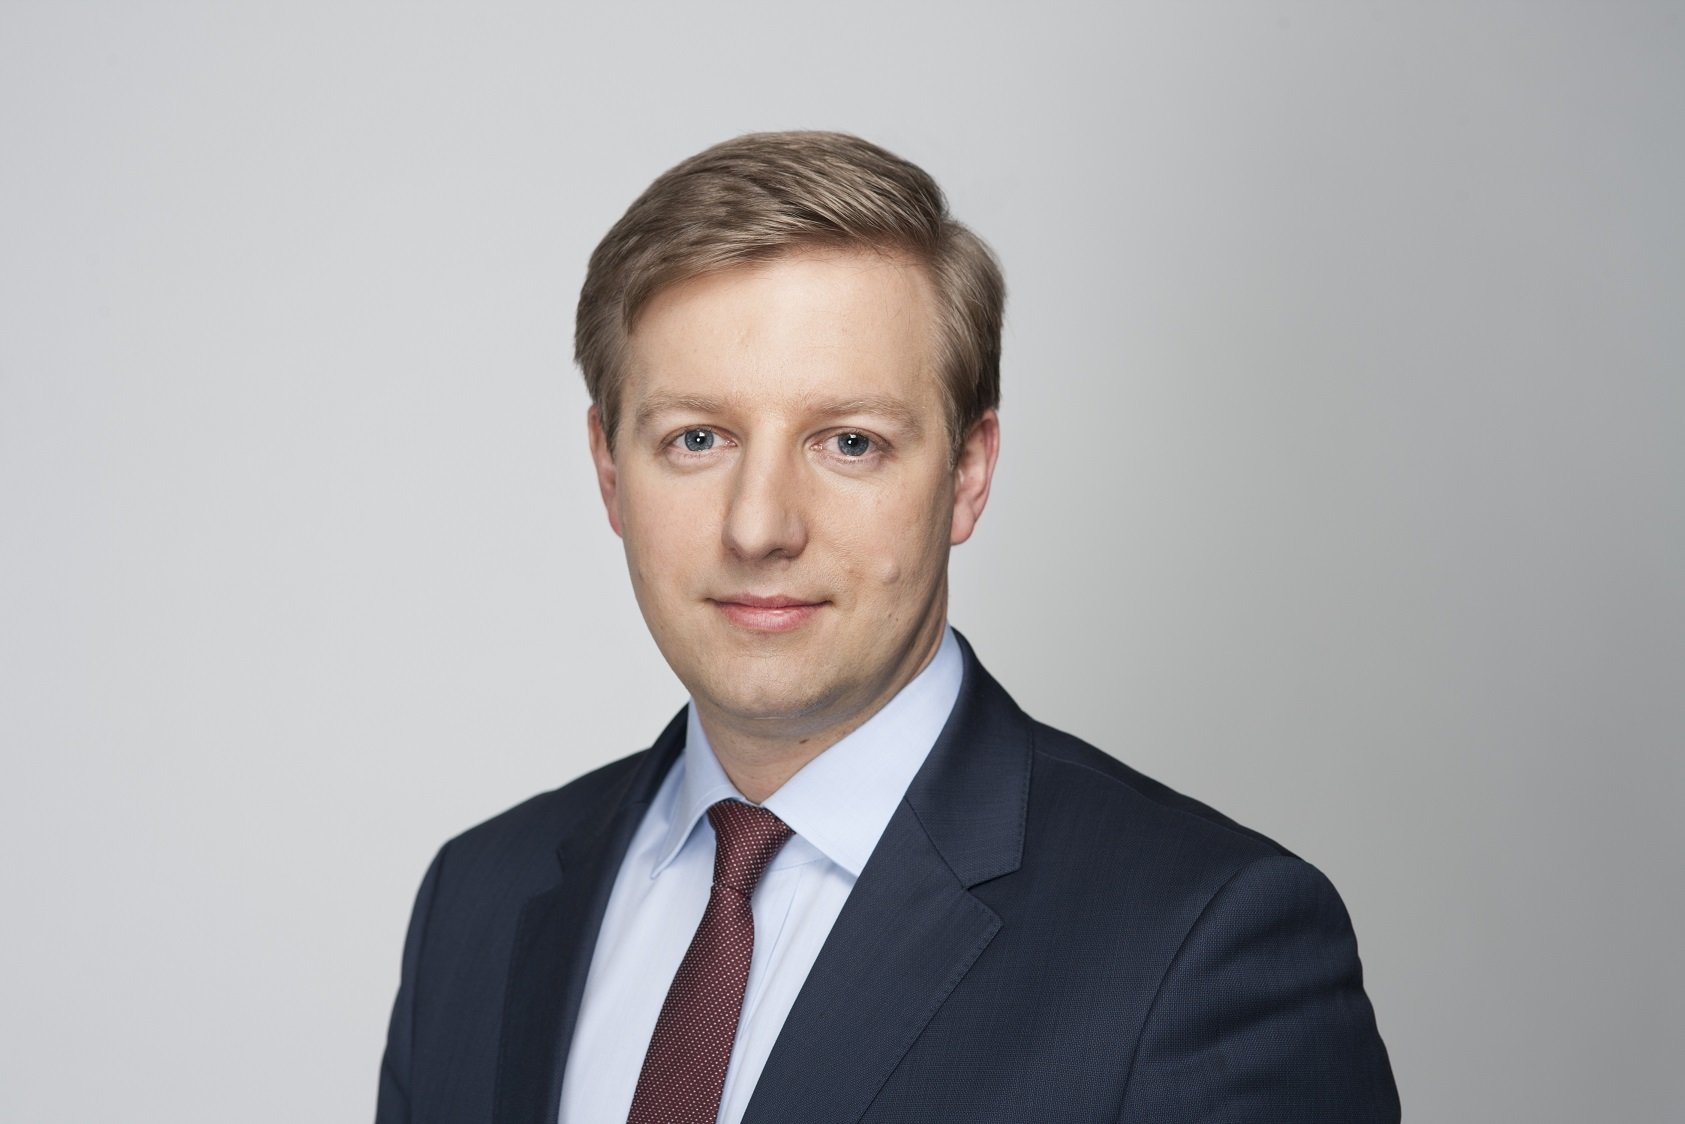 BNP Paribas Real Estate expands portfolio of managed properties